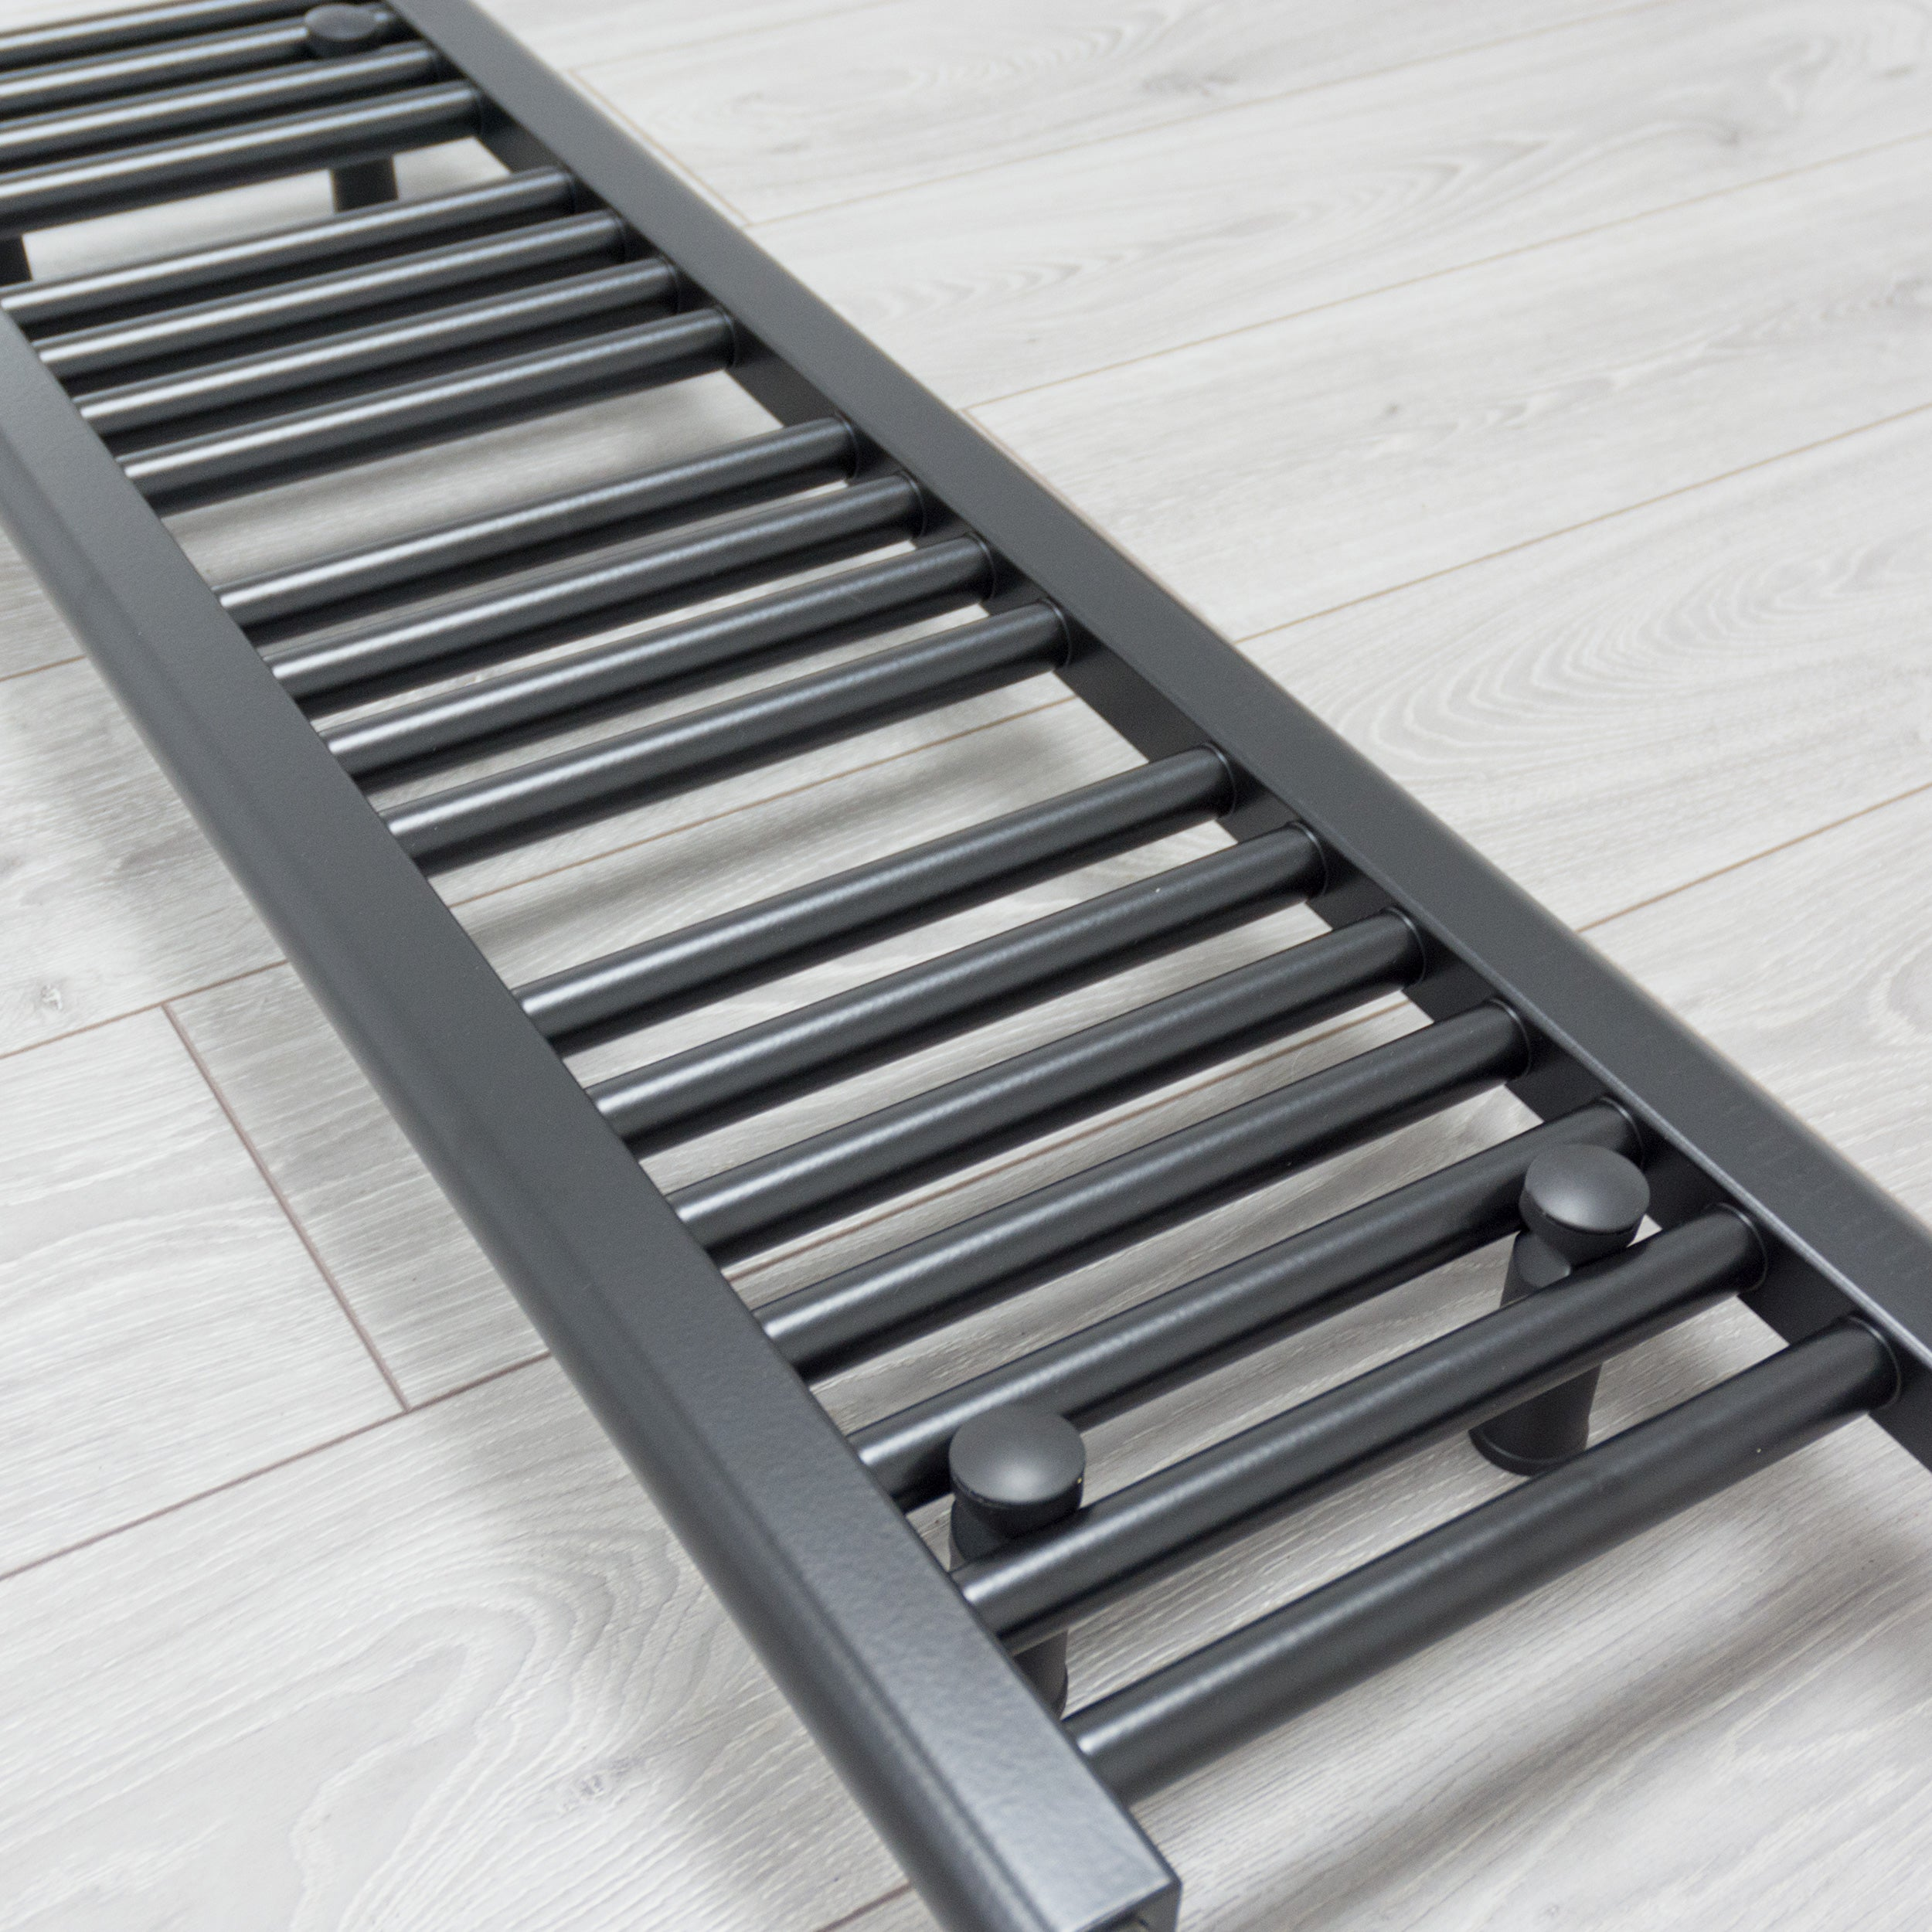 300mm Wide 1600mm High Flat Black Heated Towel Rail Radiator